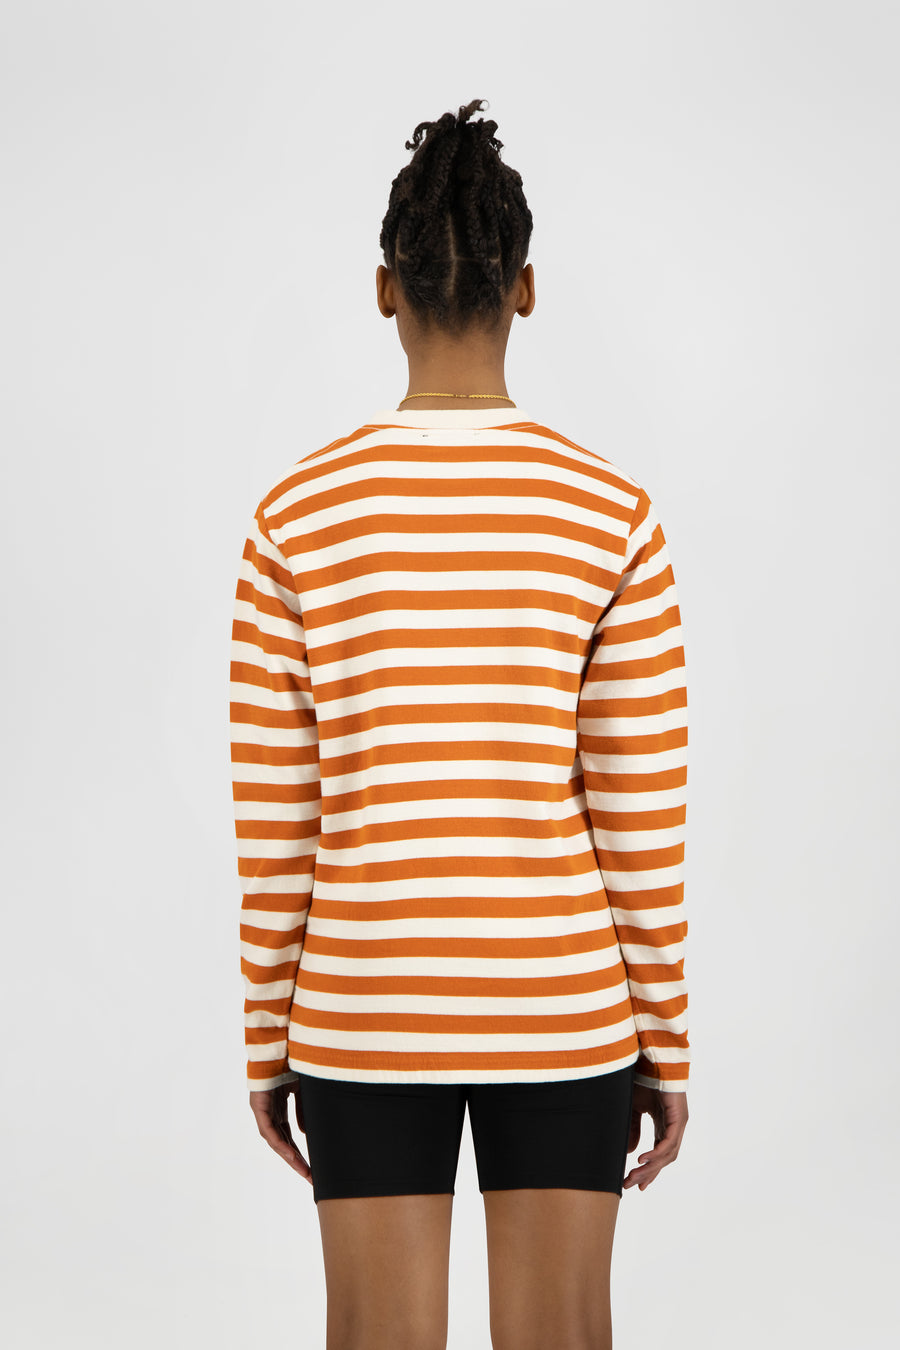 ØLÅF Stripe Sans LS Tee - White / Orange